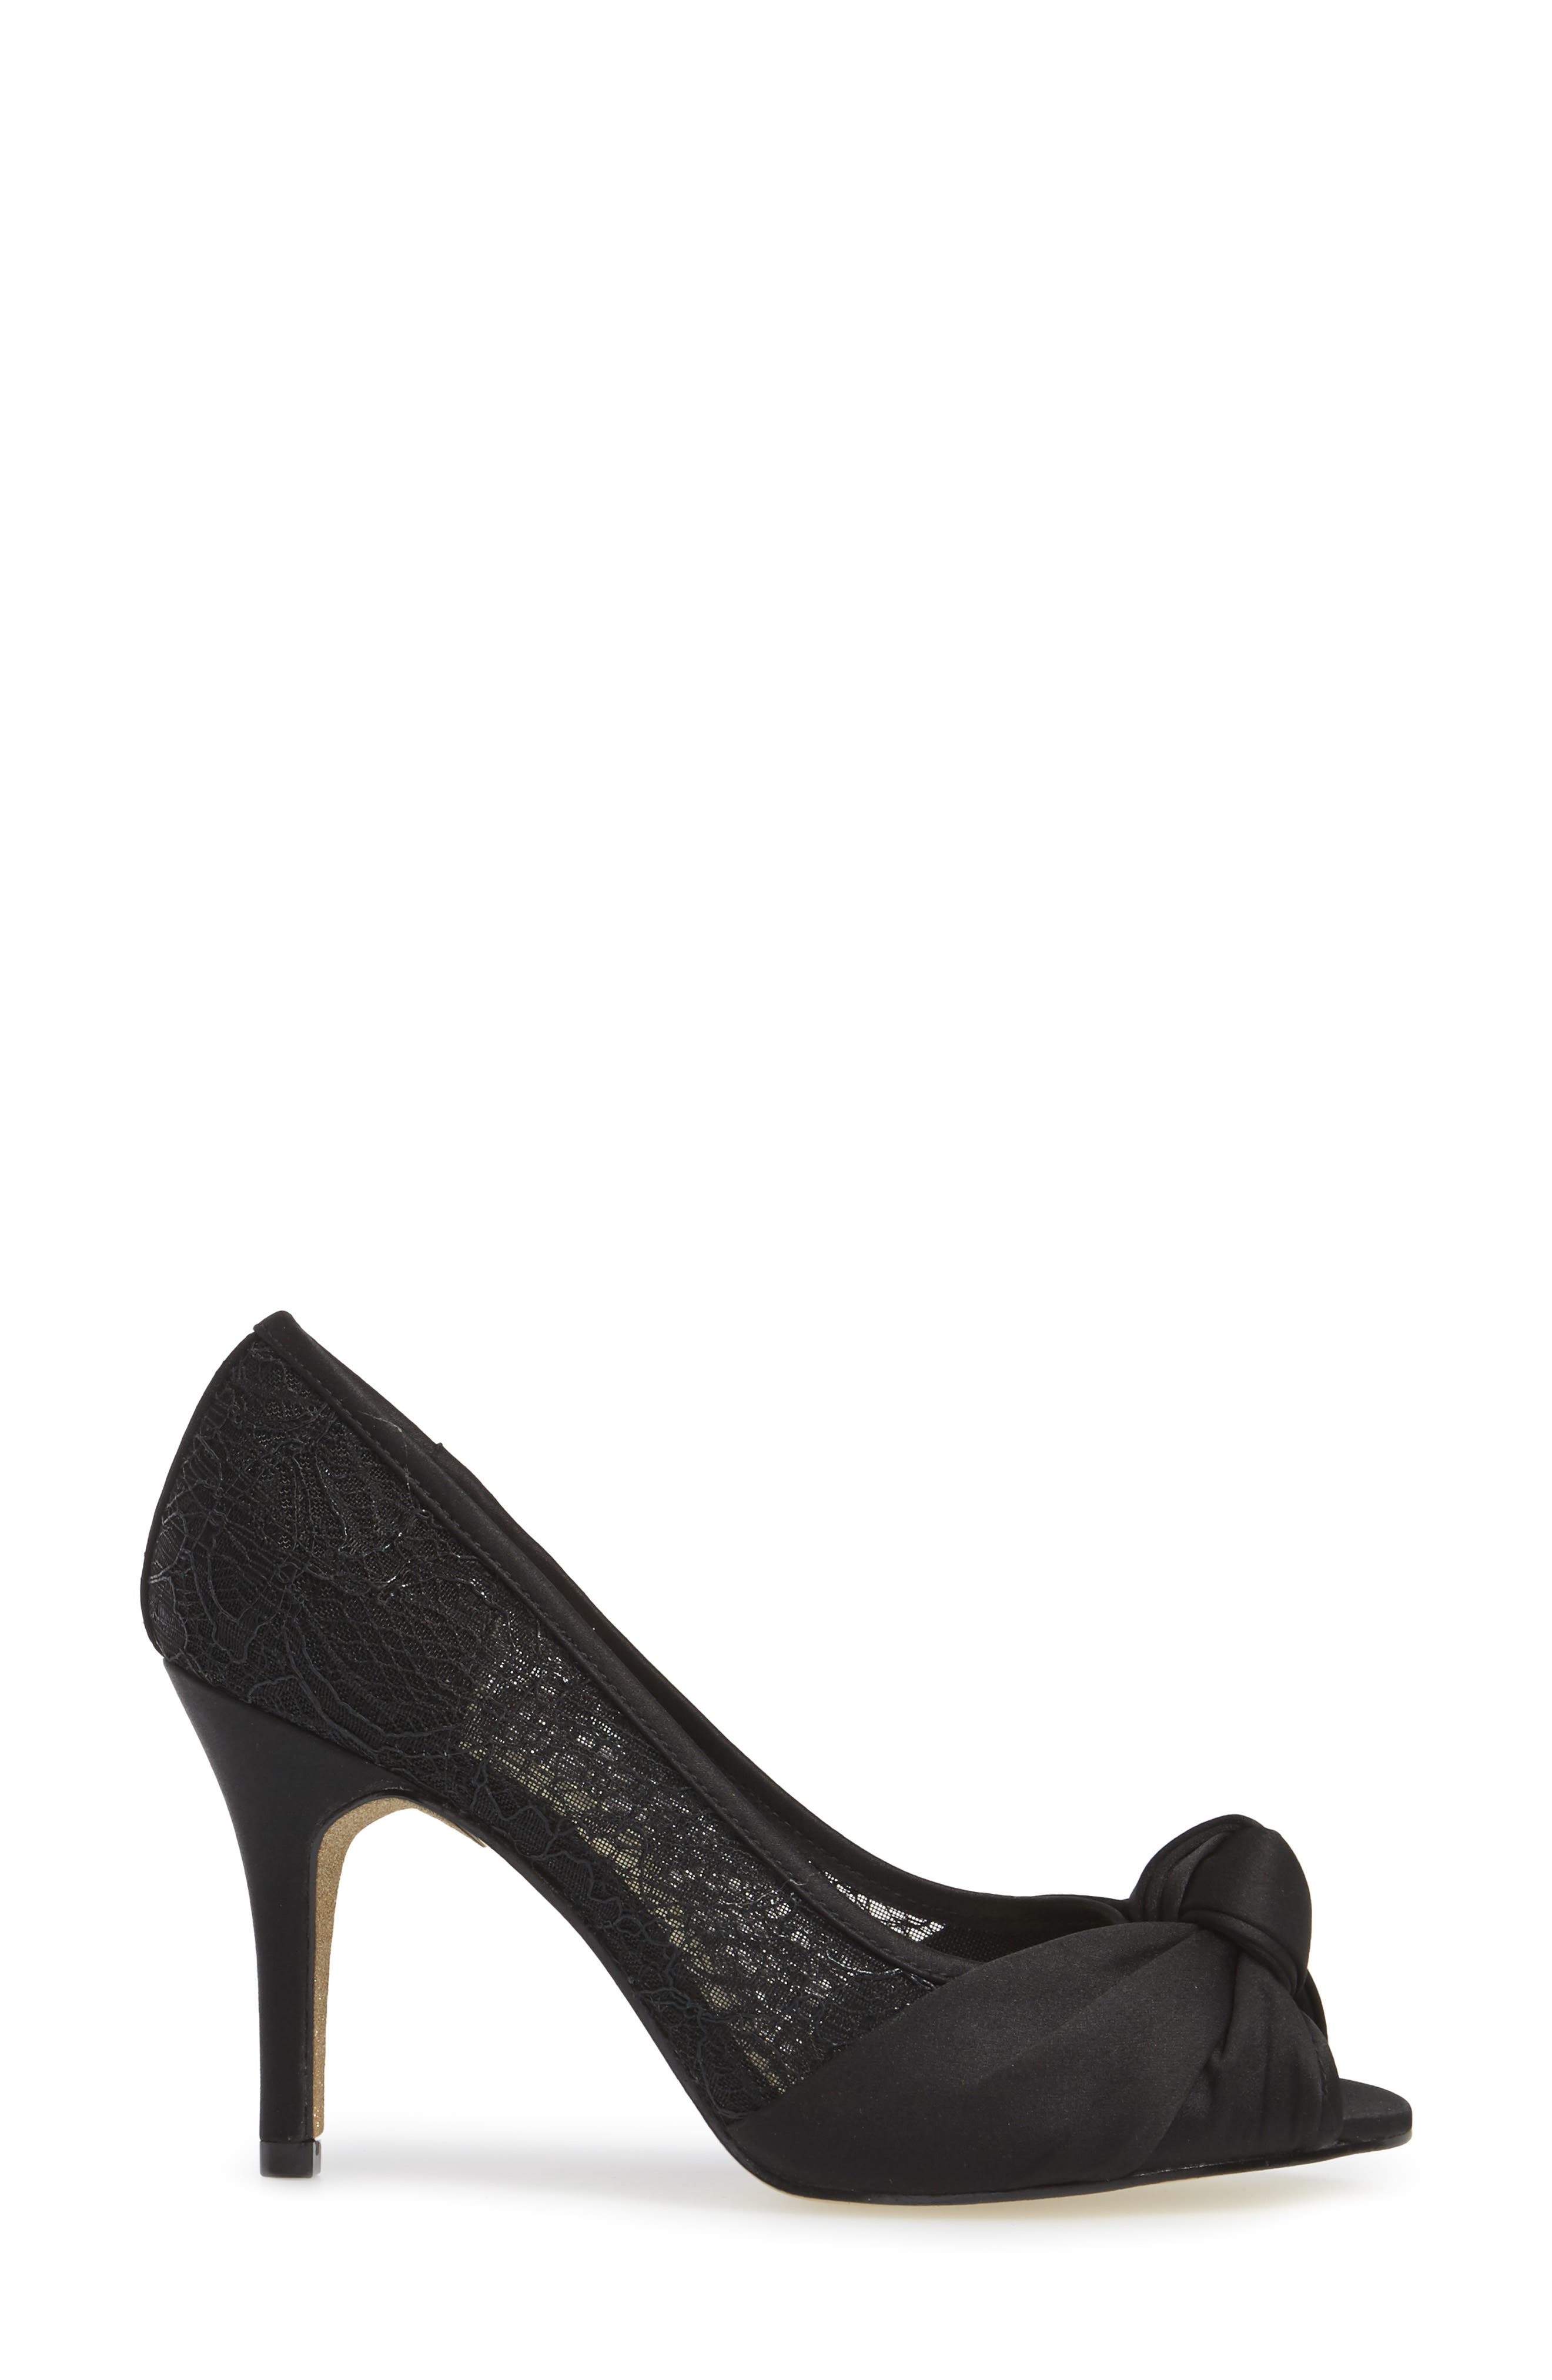 Francesca Knotted Peep Toe Pump,                             Alternate thumbnail 3, color,                             001